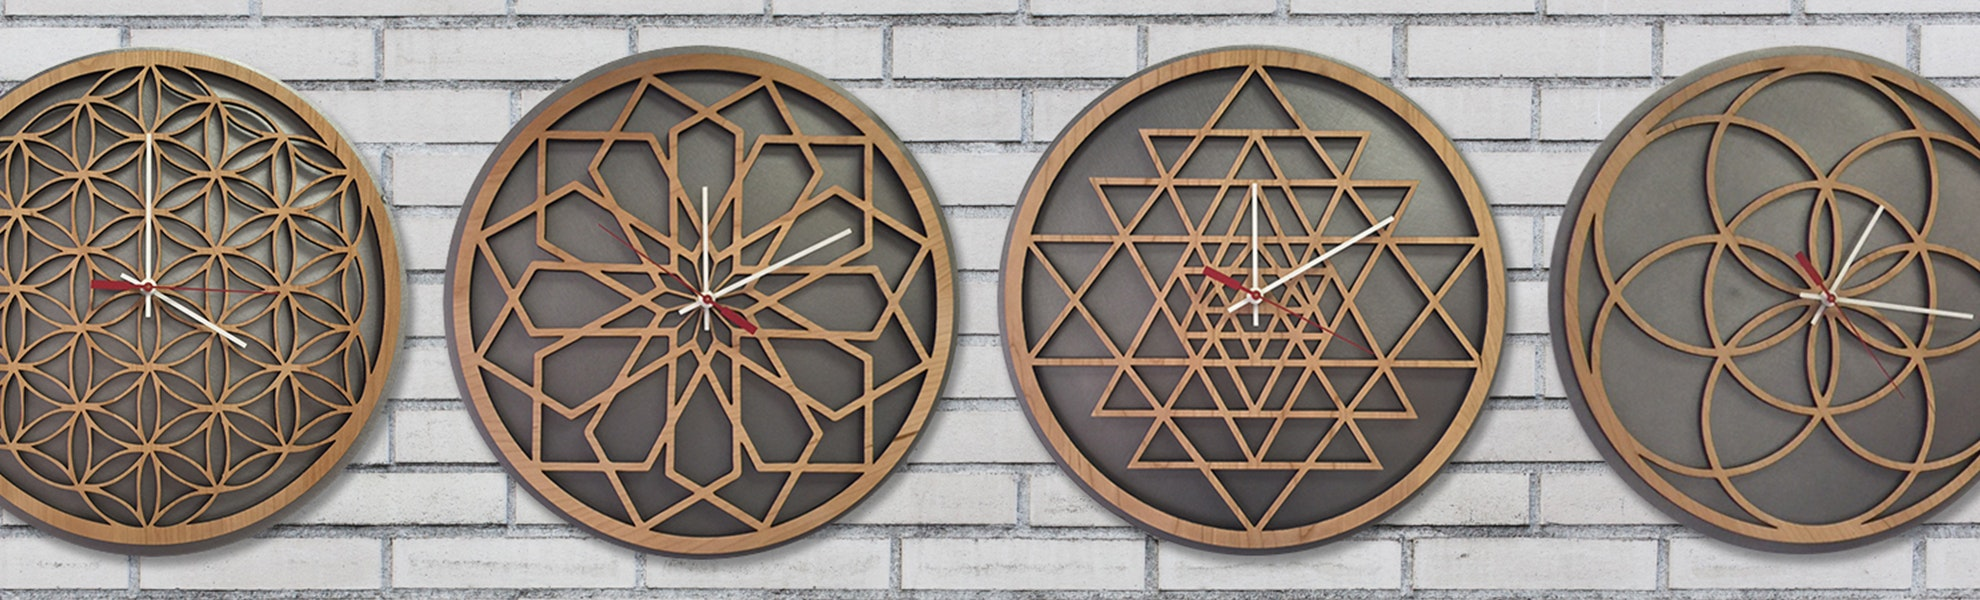 Inked and Screened Geometric Wooden Clocks